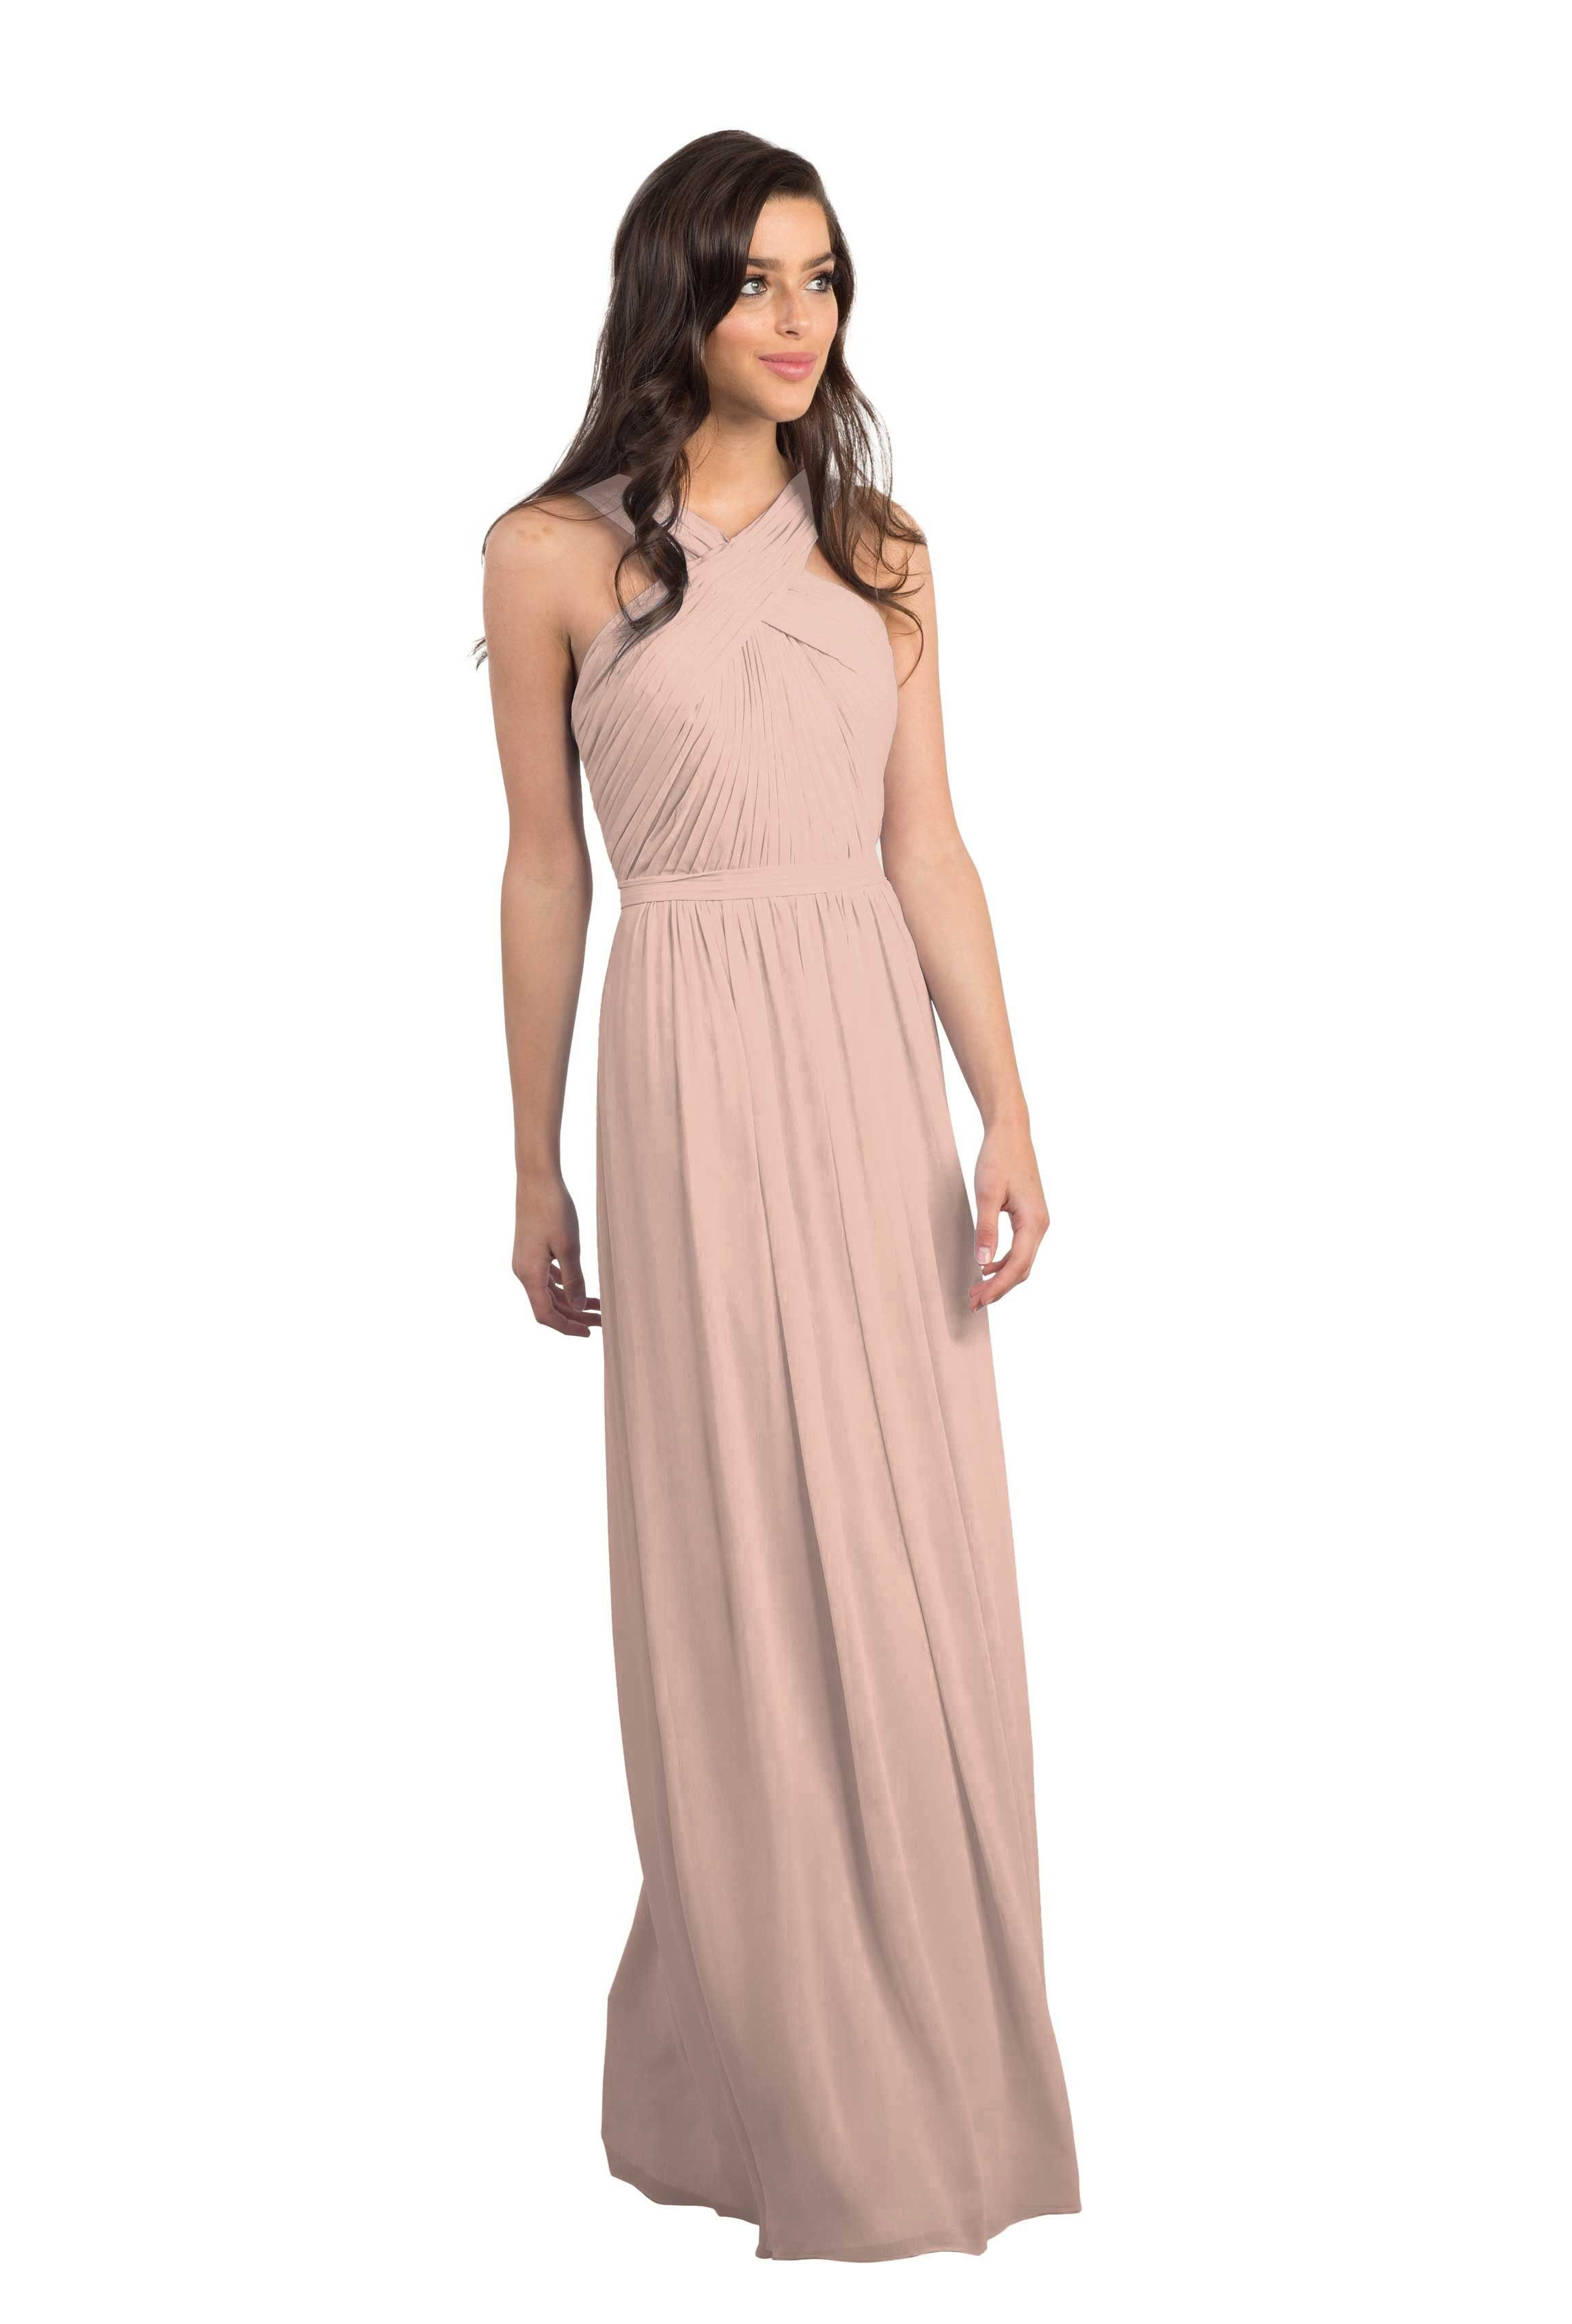 Watters Micah | Chiffon gown, Gowns and Bridal dresses